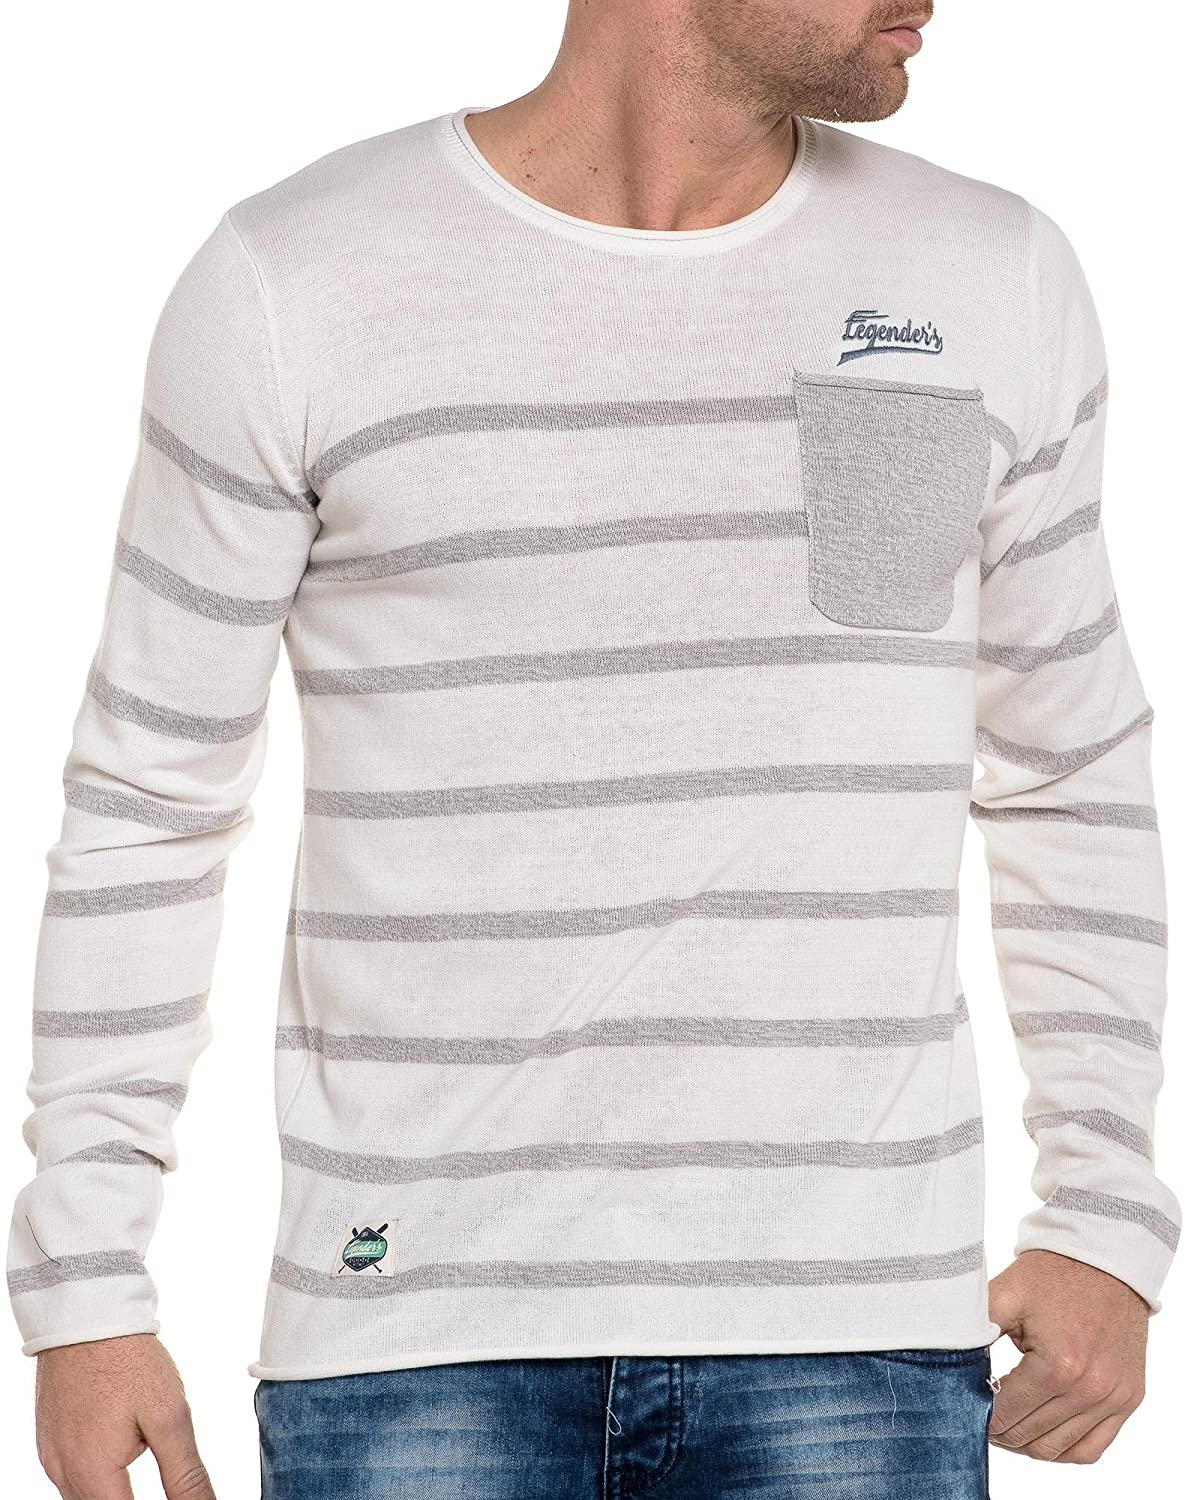 Legenders - white striped gray sweater chest pocket